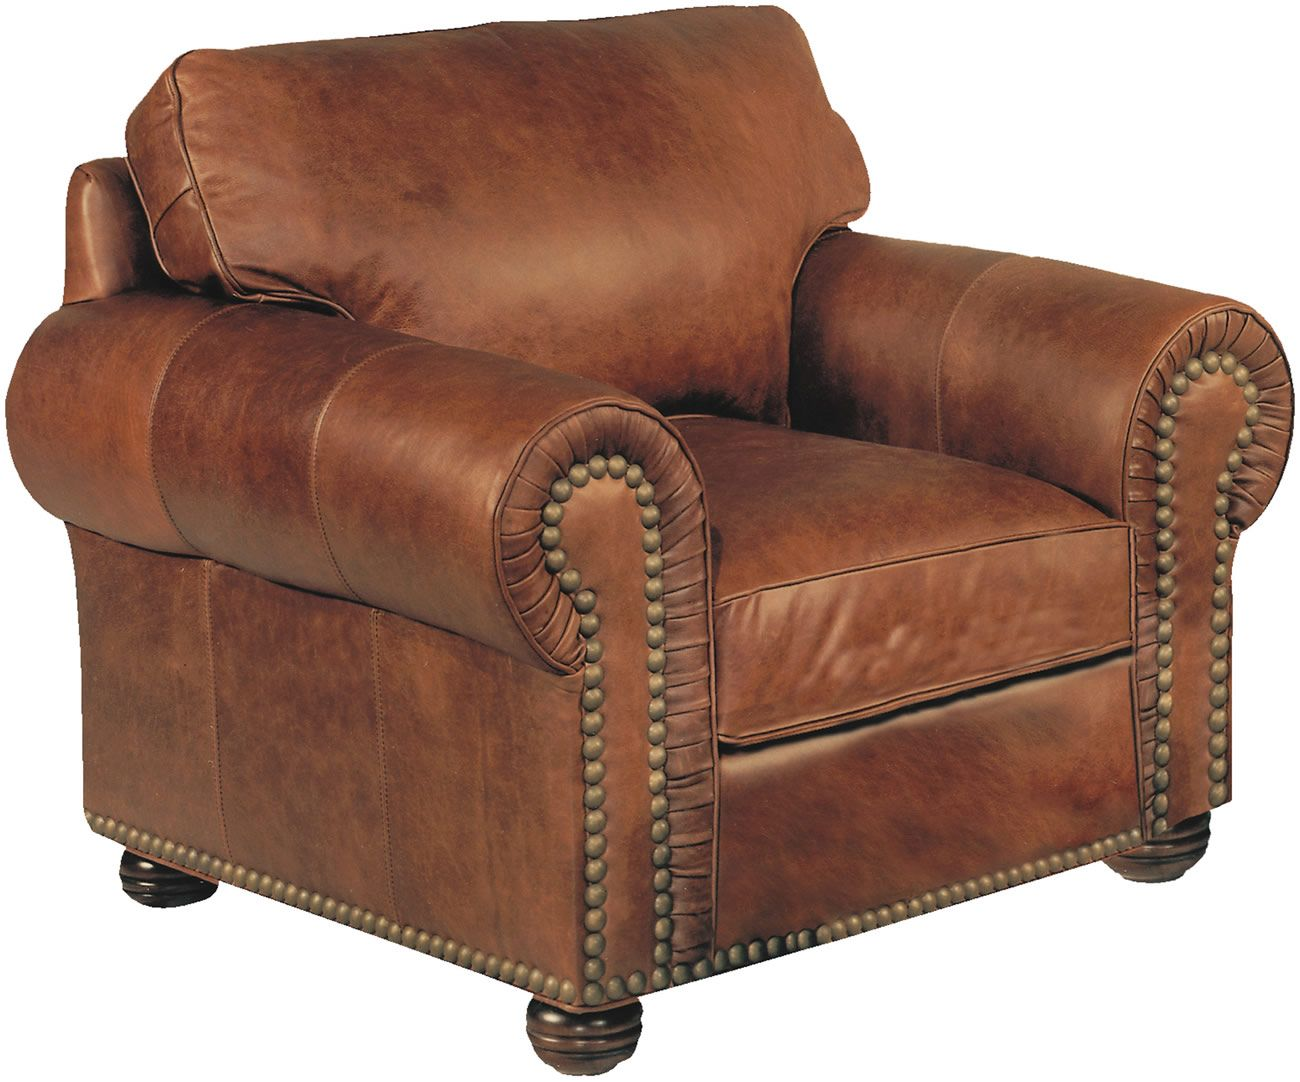 Stickley Hutchinson Leather Chair With Nailhead Trim